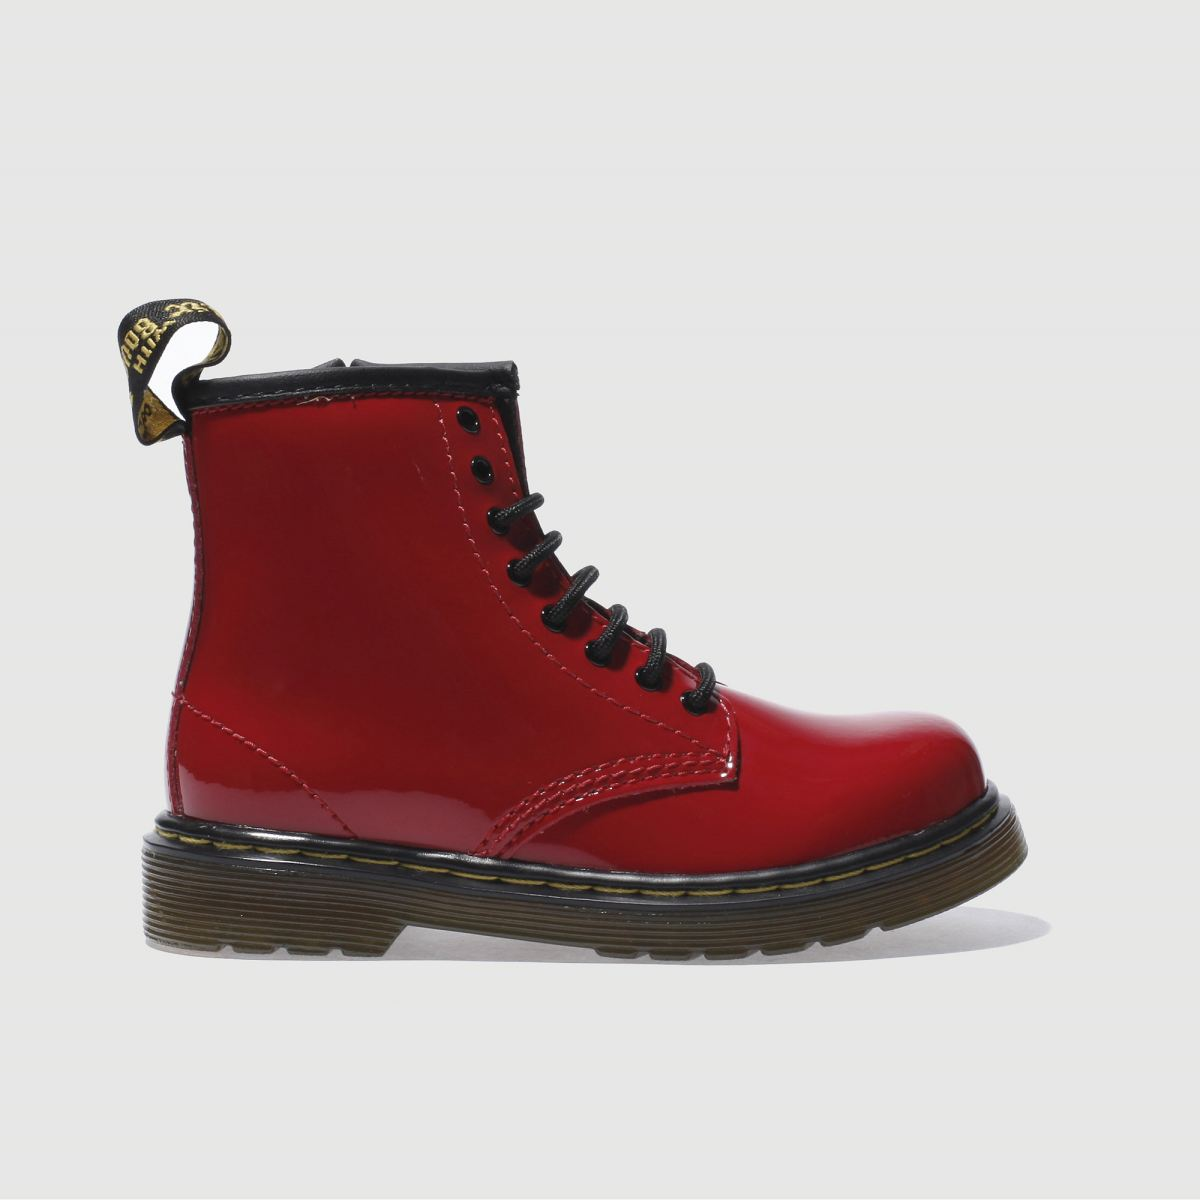 Dr Martens Red 1460 Girls Toddler Boots